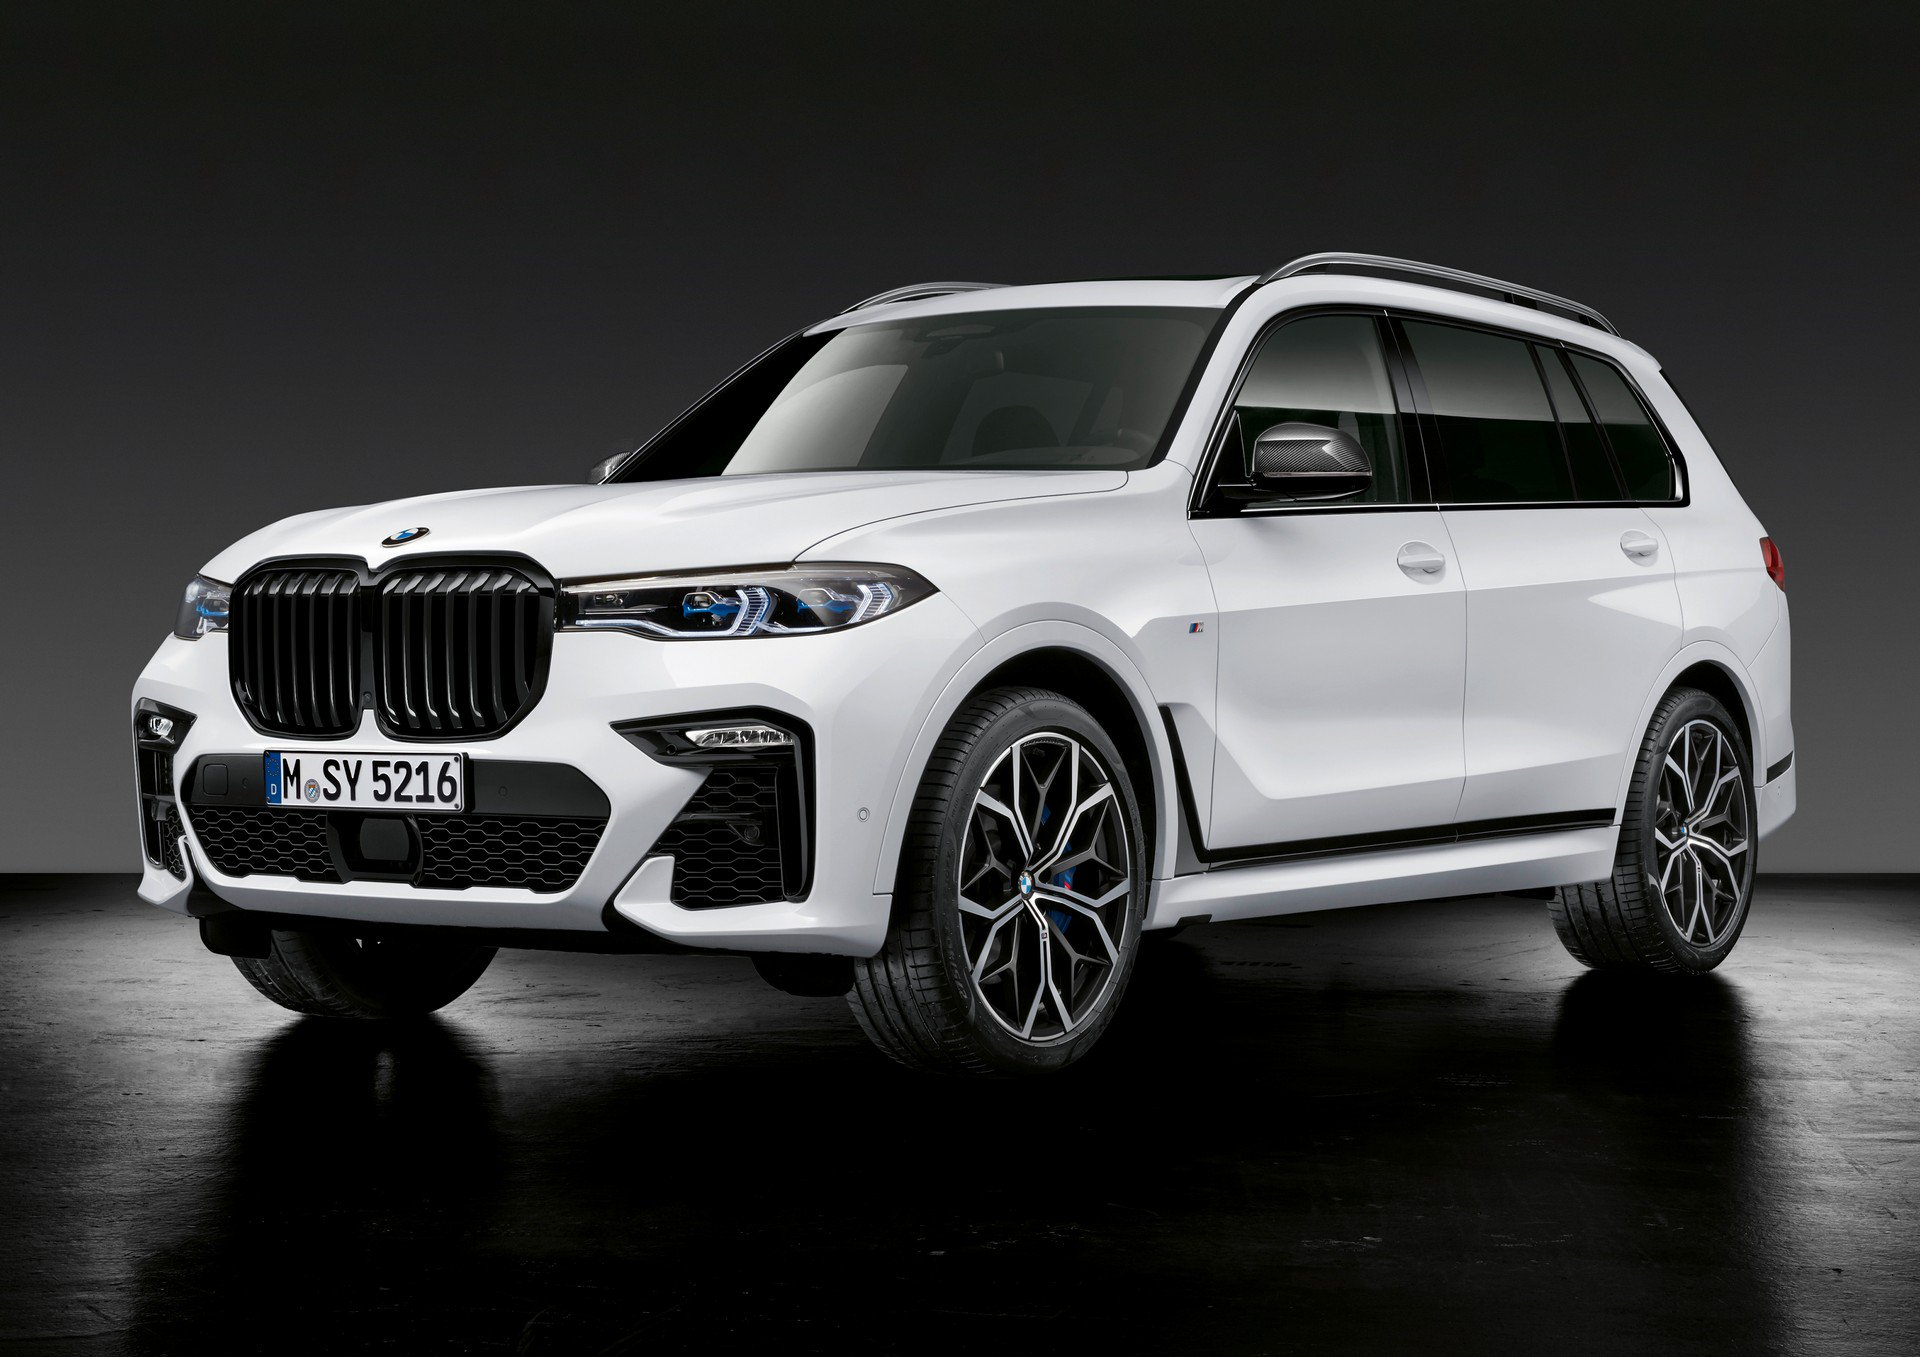 bmw-m-performance-parts-for-x5-x6-m-1.jpg